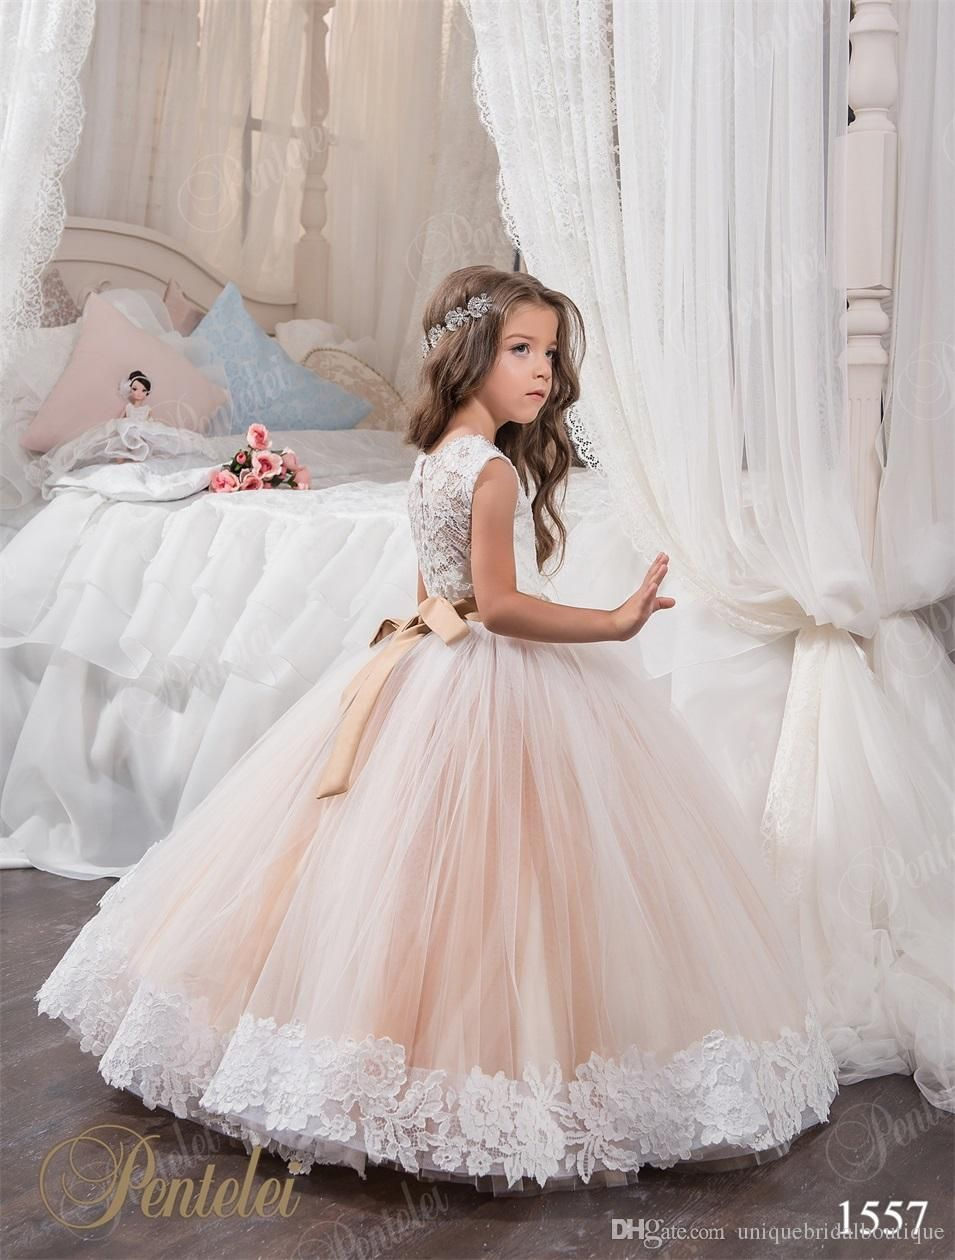 2018 cheap ball gown flower girl dresses jewel lace appliques birthday party dresses with sashes. Black Bedroom Furniture Sets. Home Design Ideas